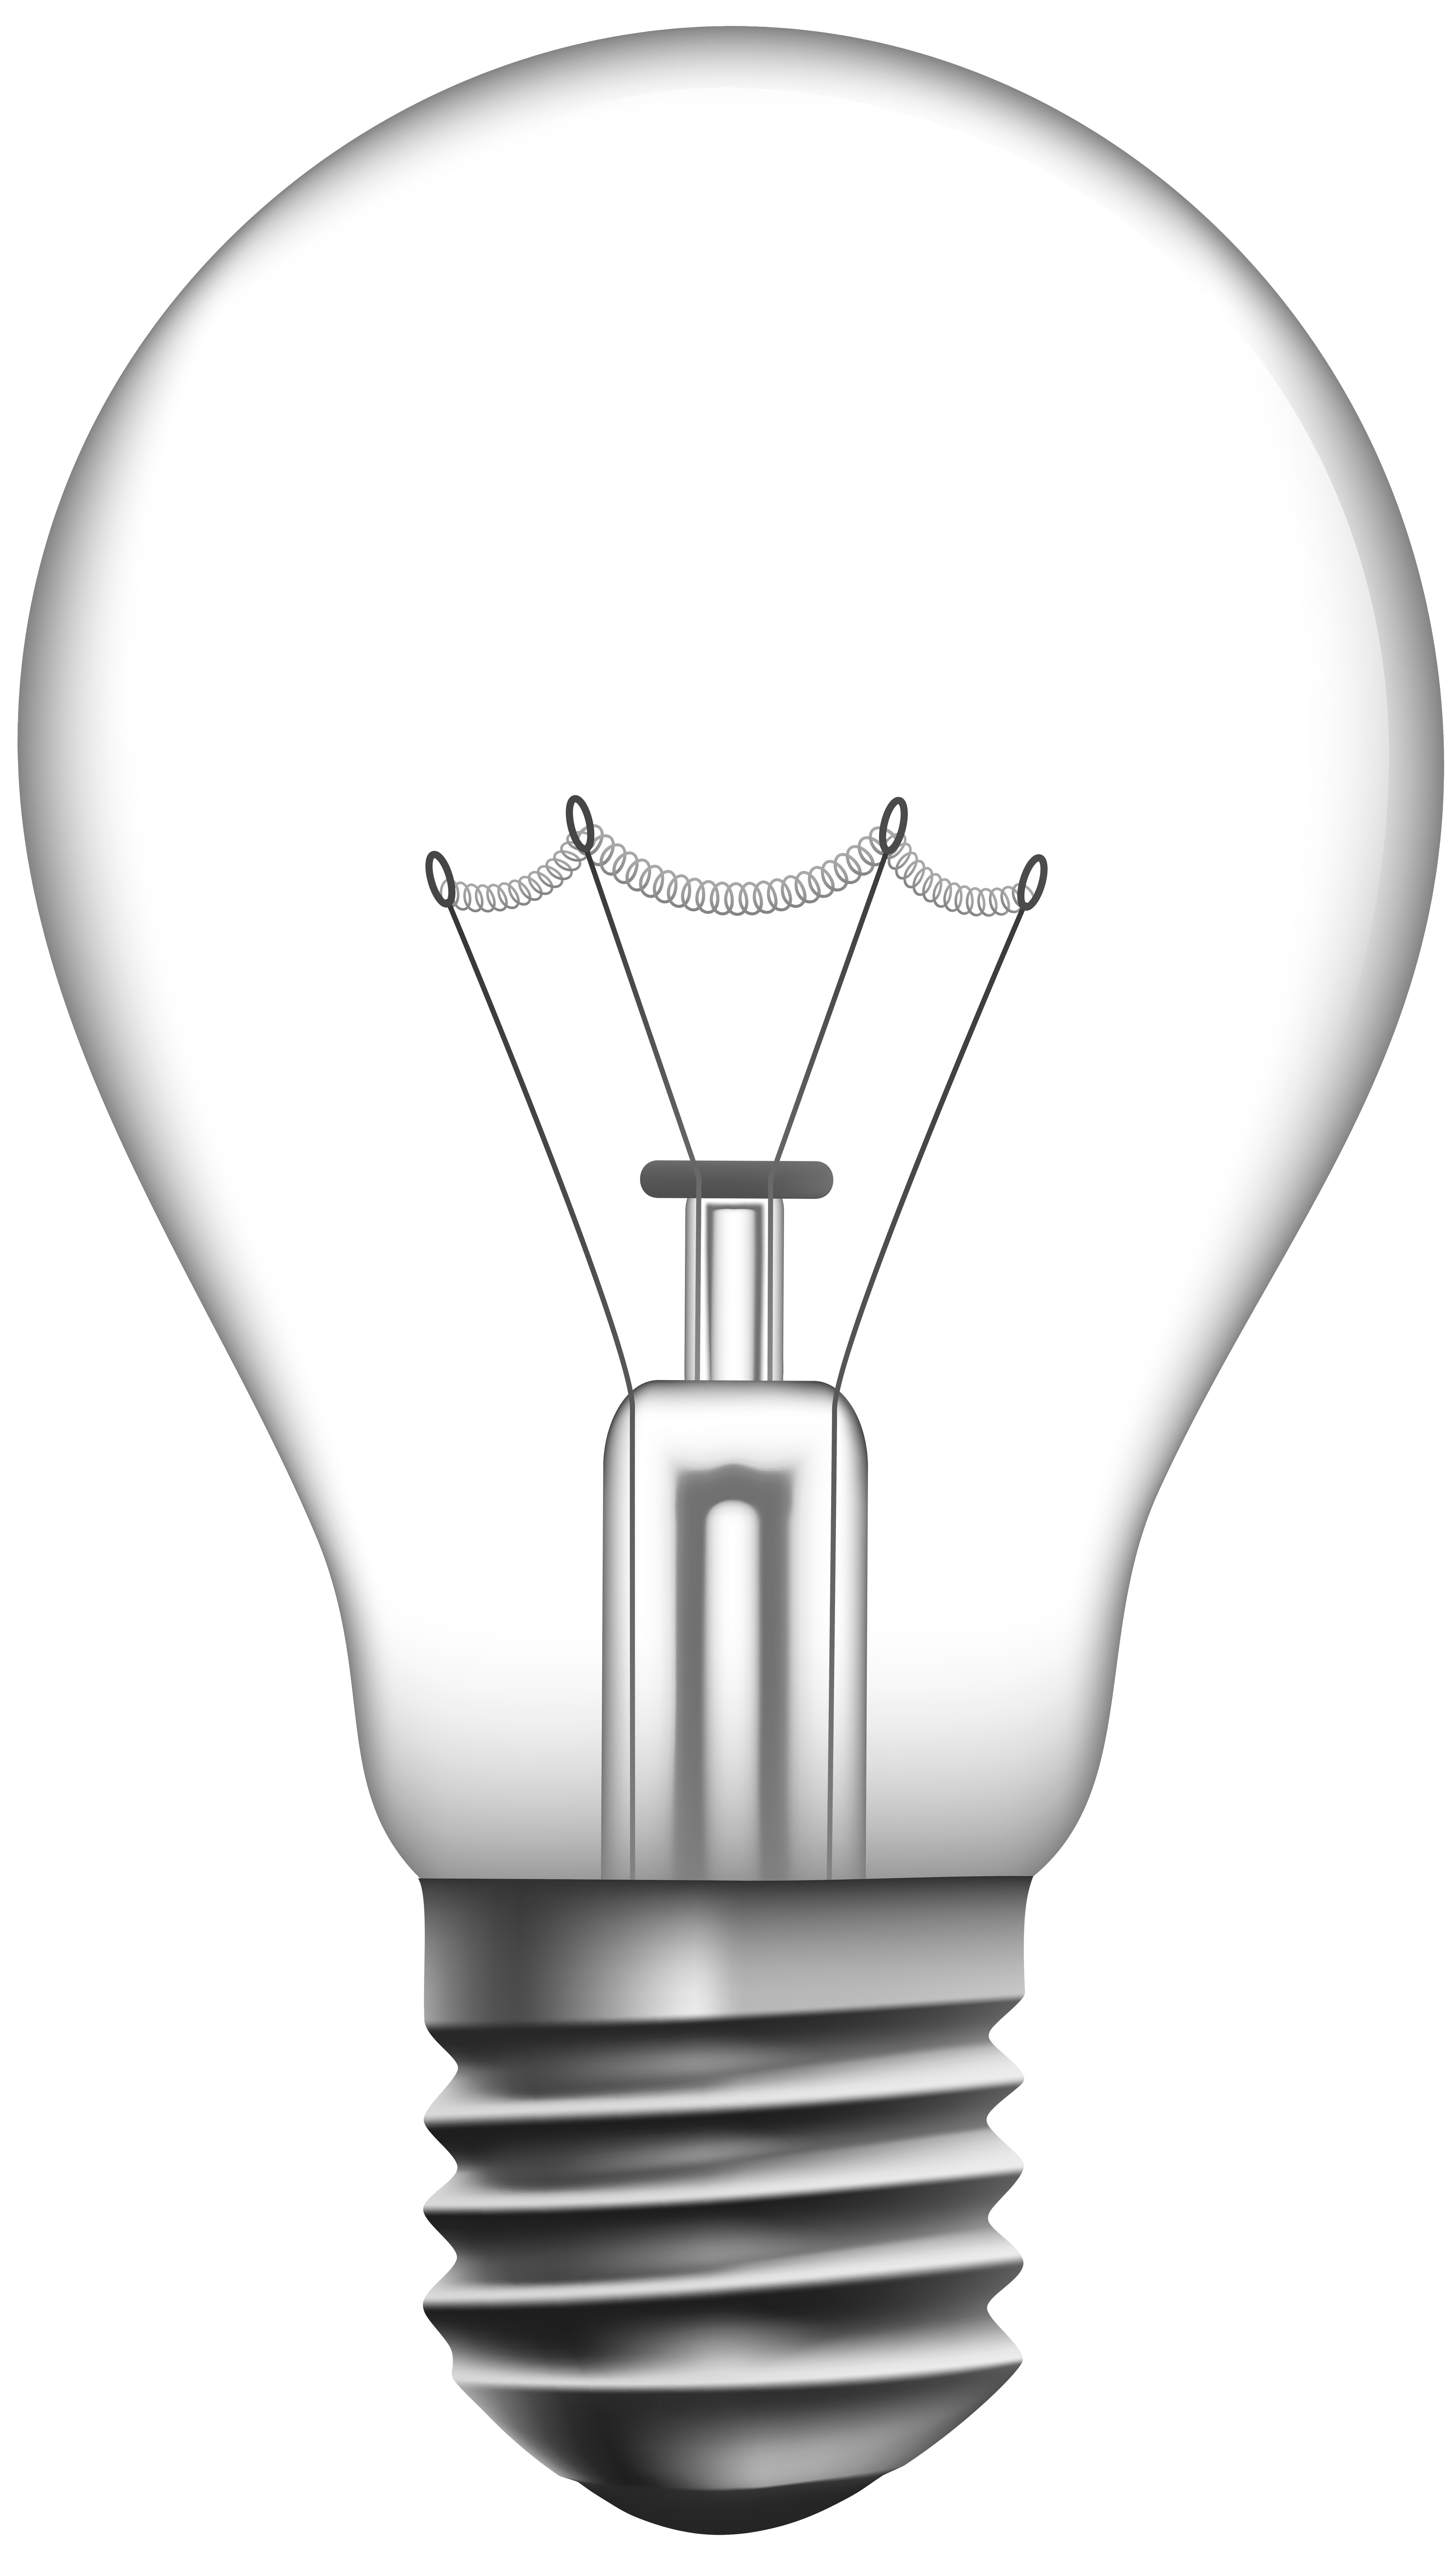 pin Light clipart simple #14